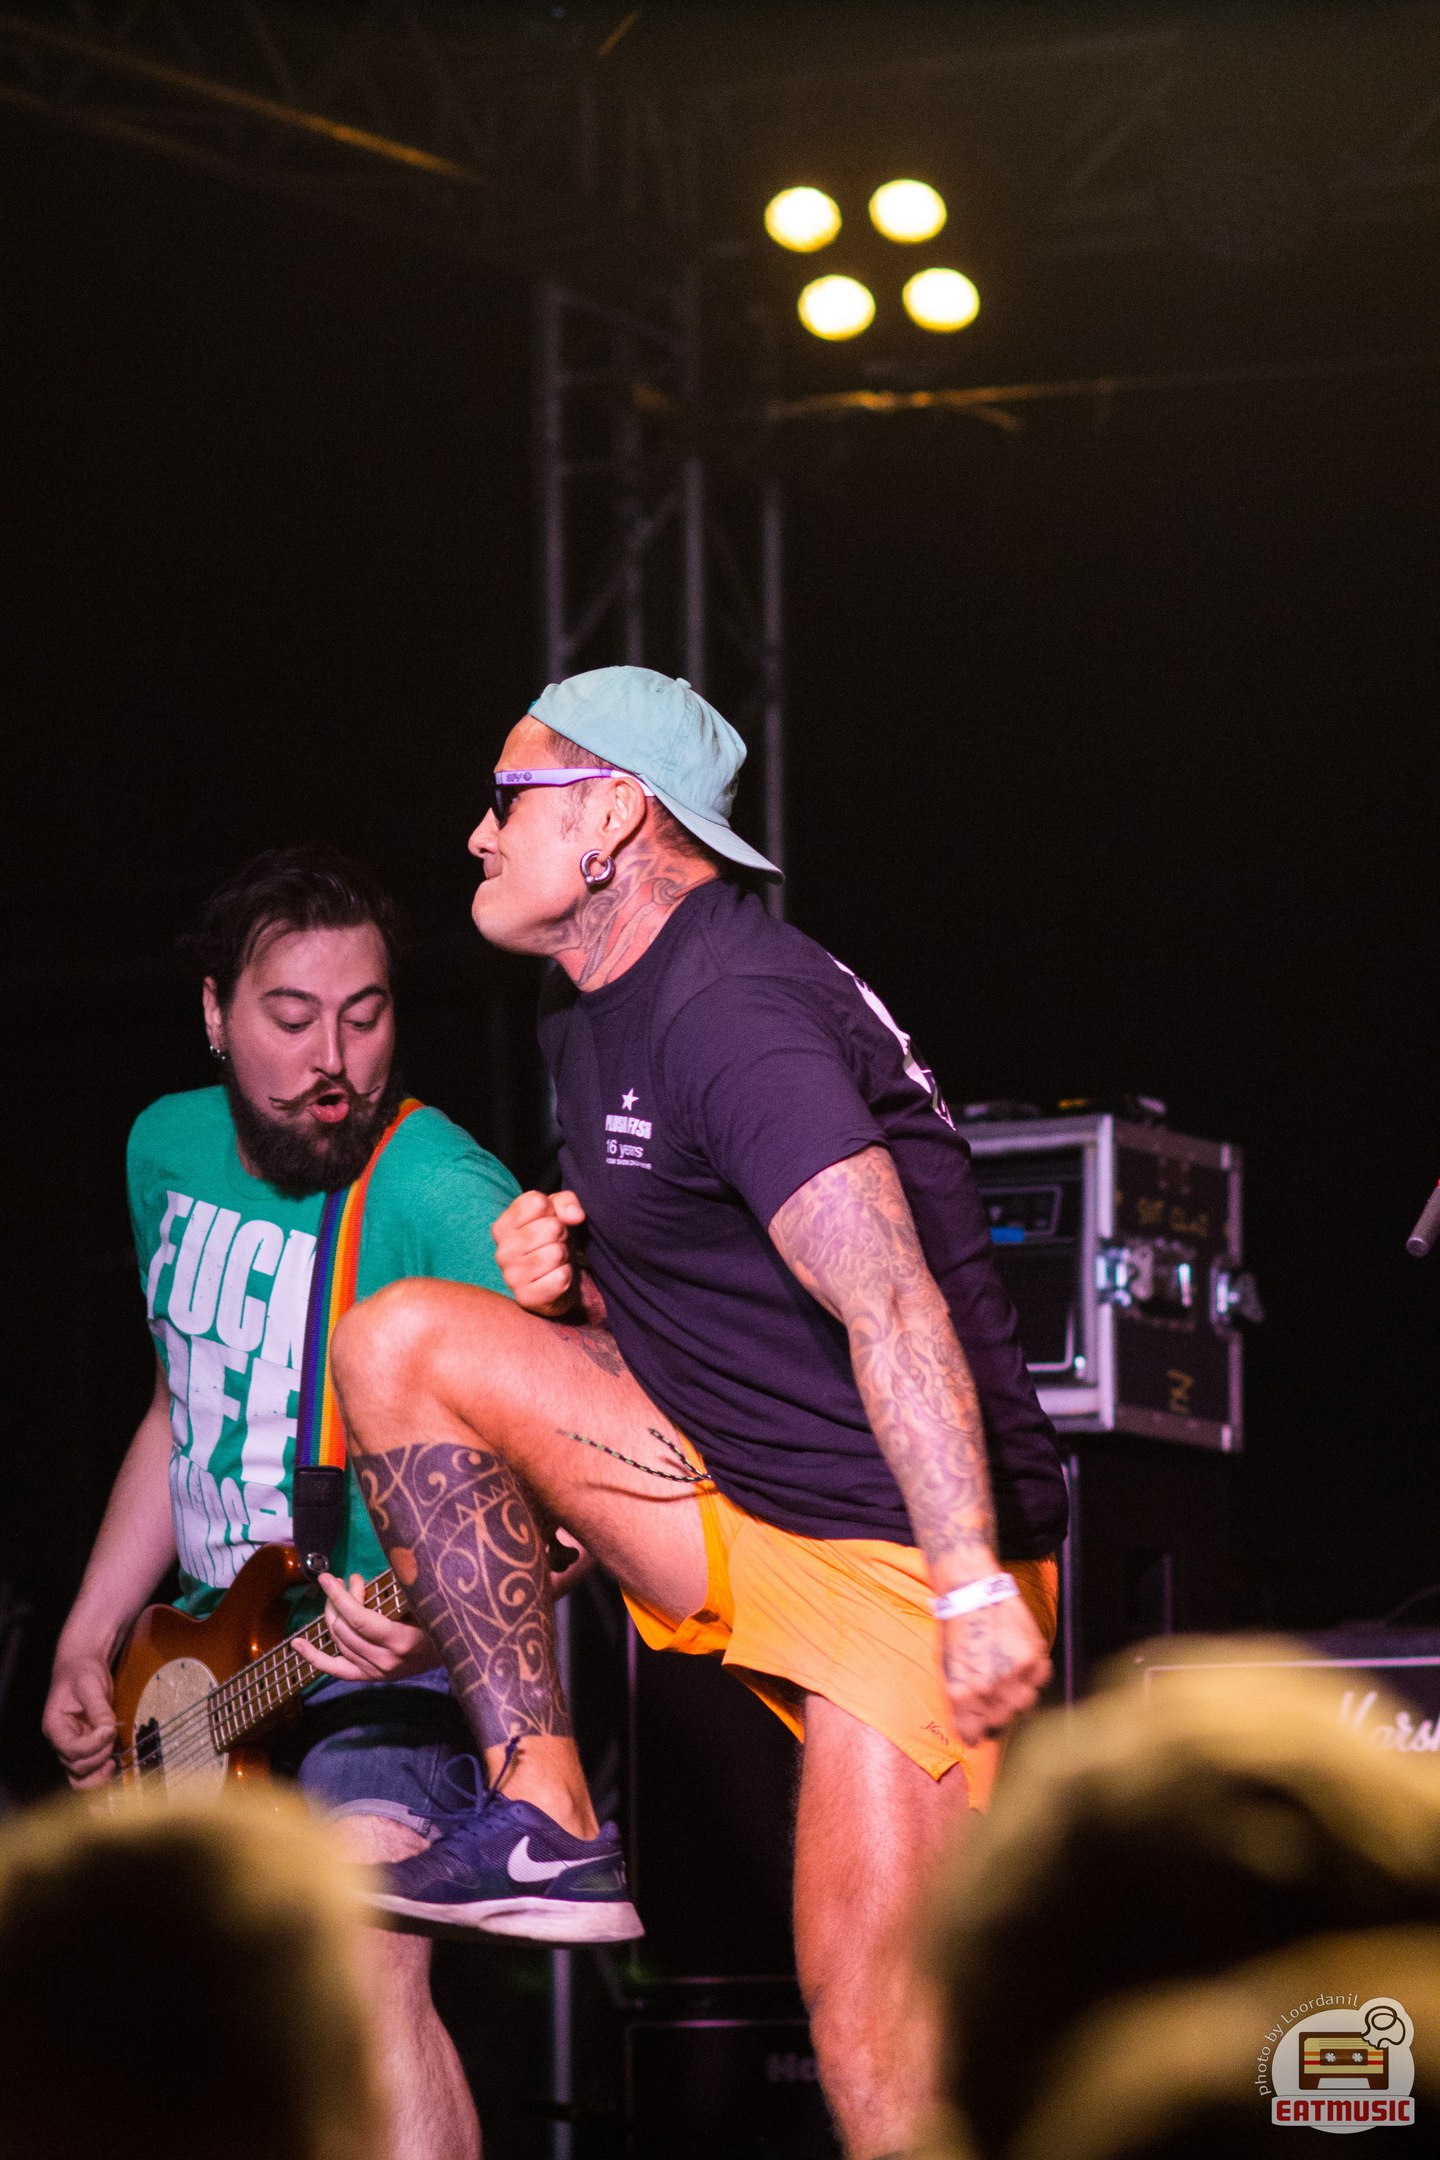 16/08/16 Концерт Zebrahead + Plush Fish @ VOLTA Фотограф - Роман Воронин